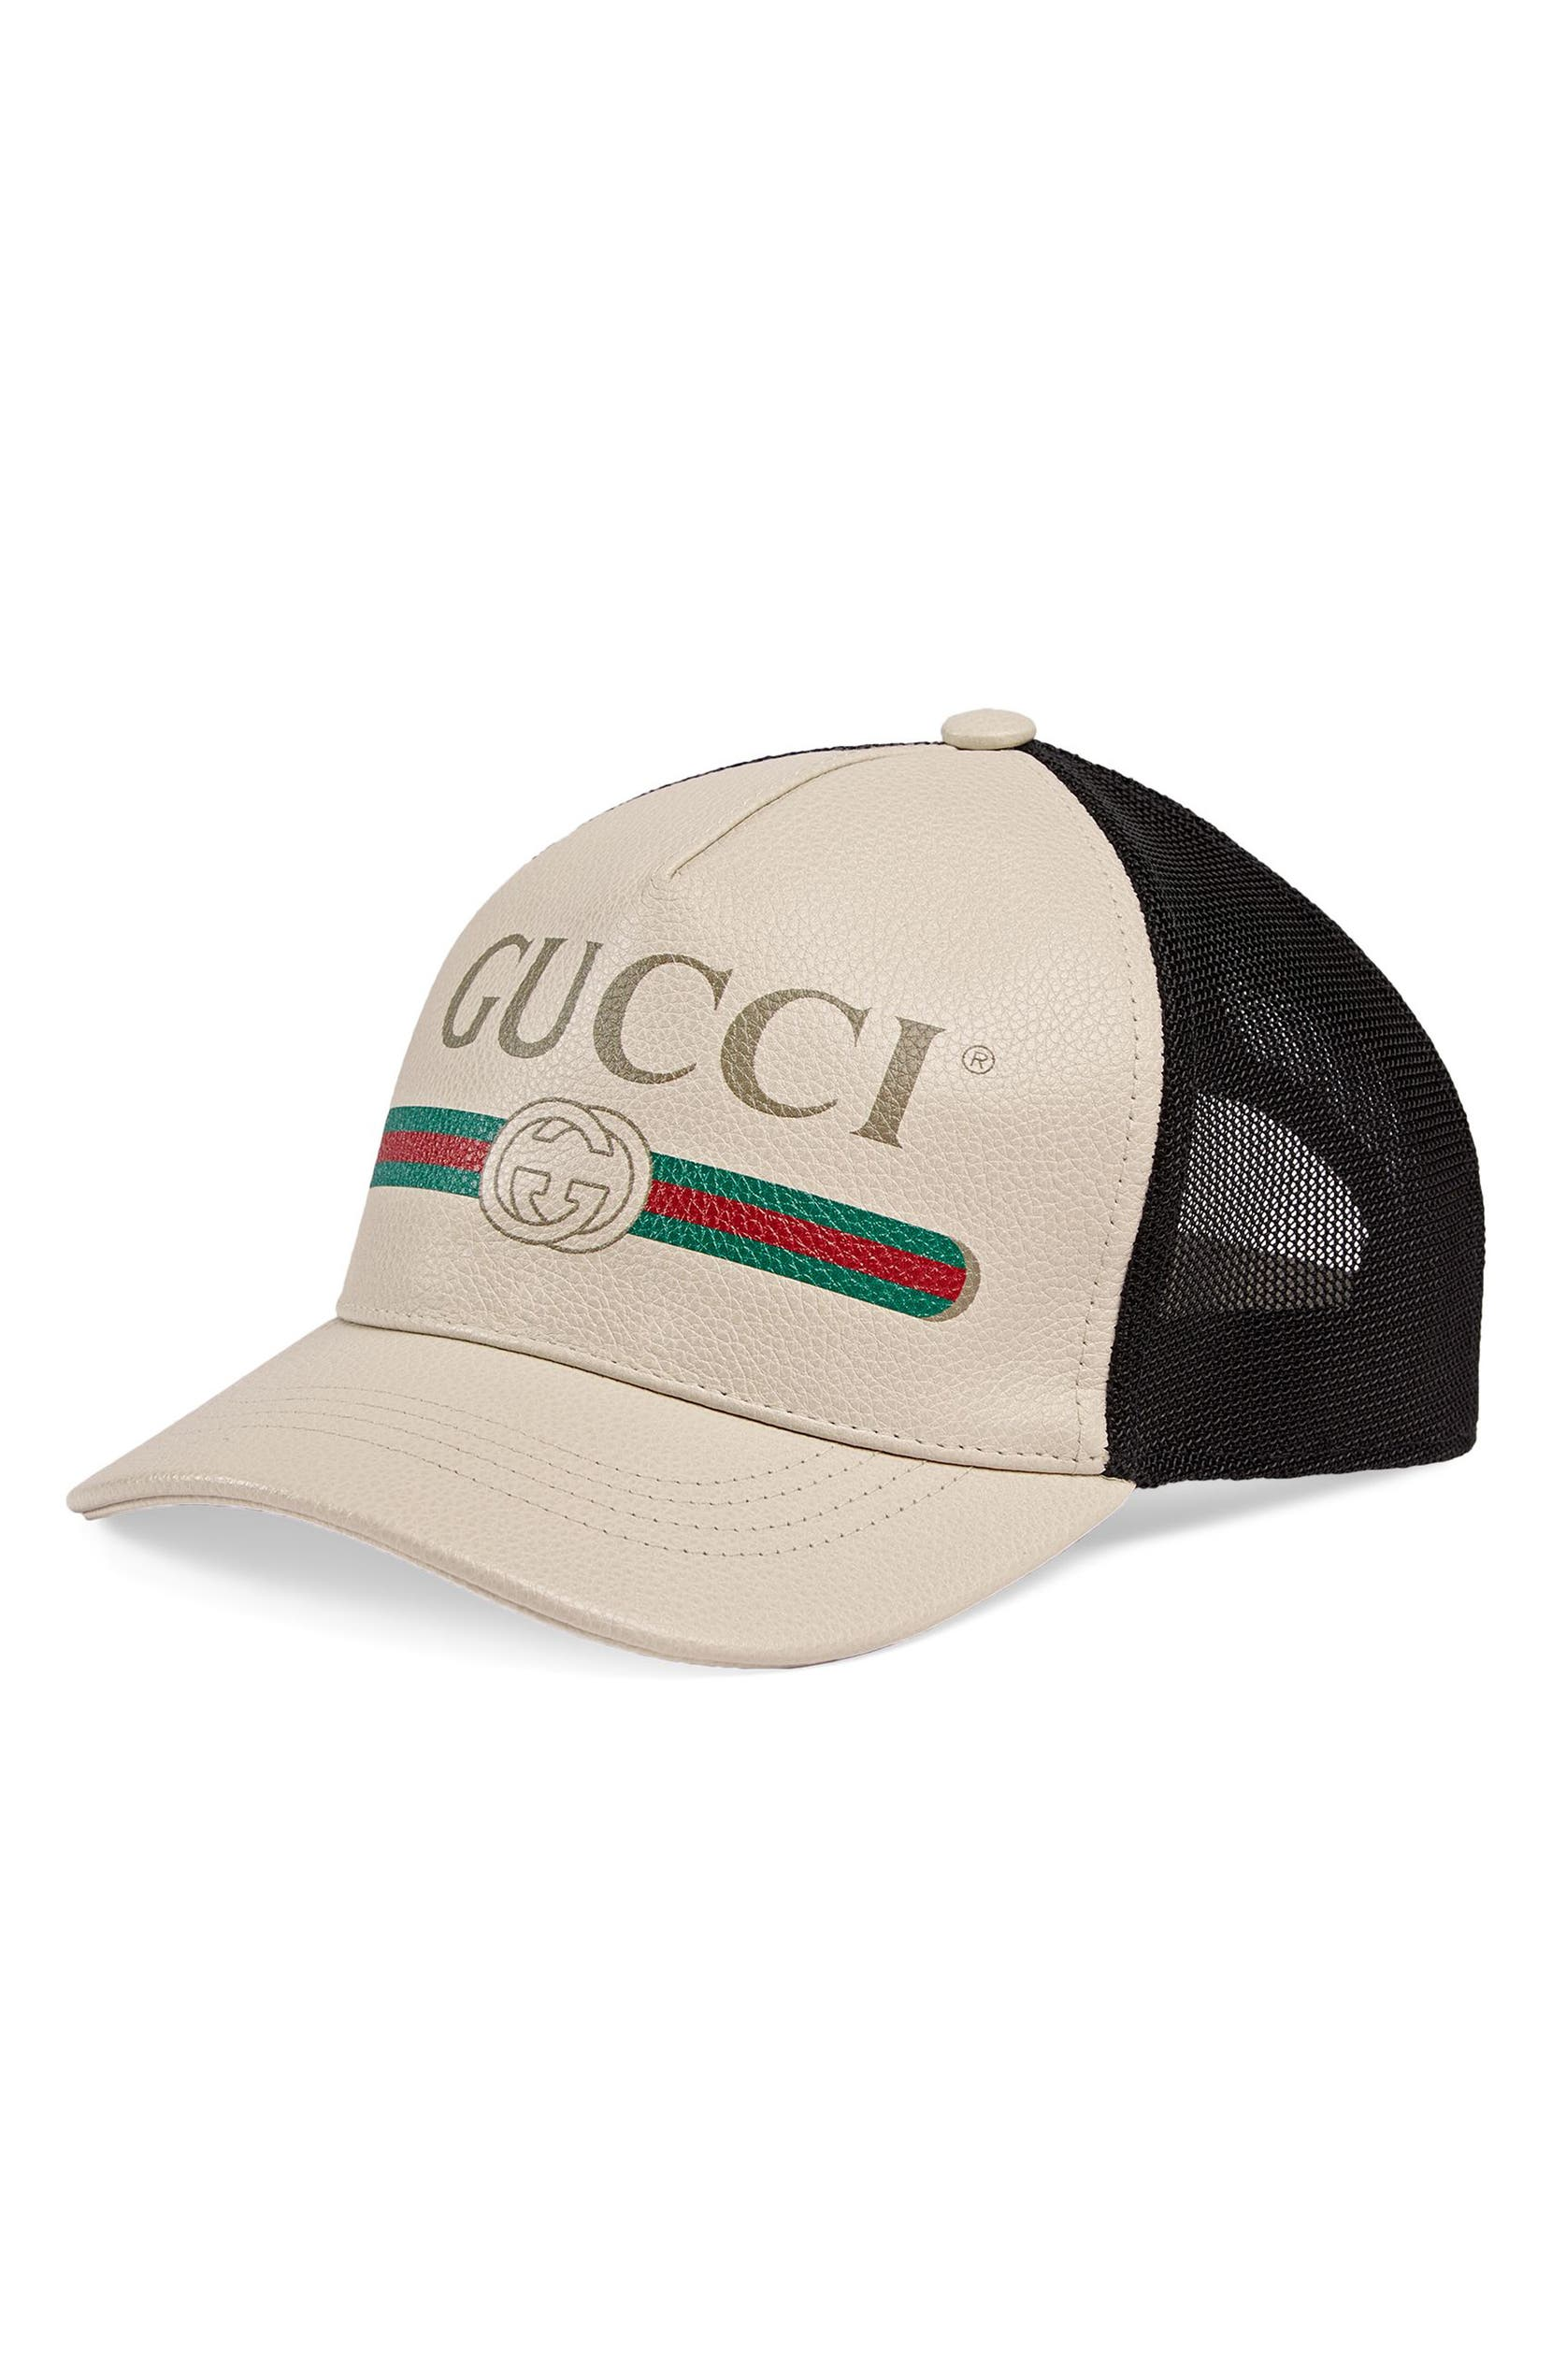 c1598f2191f Gucci Vintage Logo Leather Ball Cap